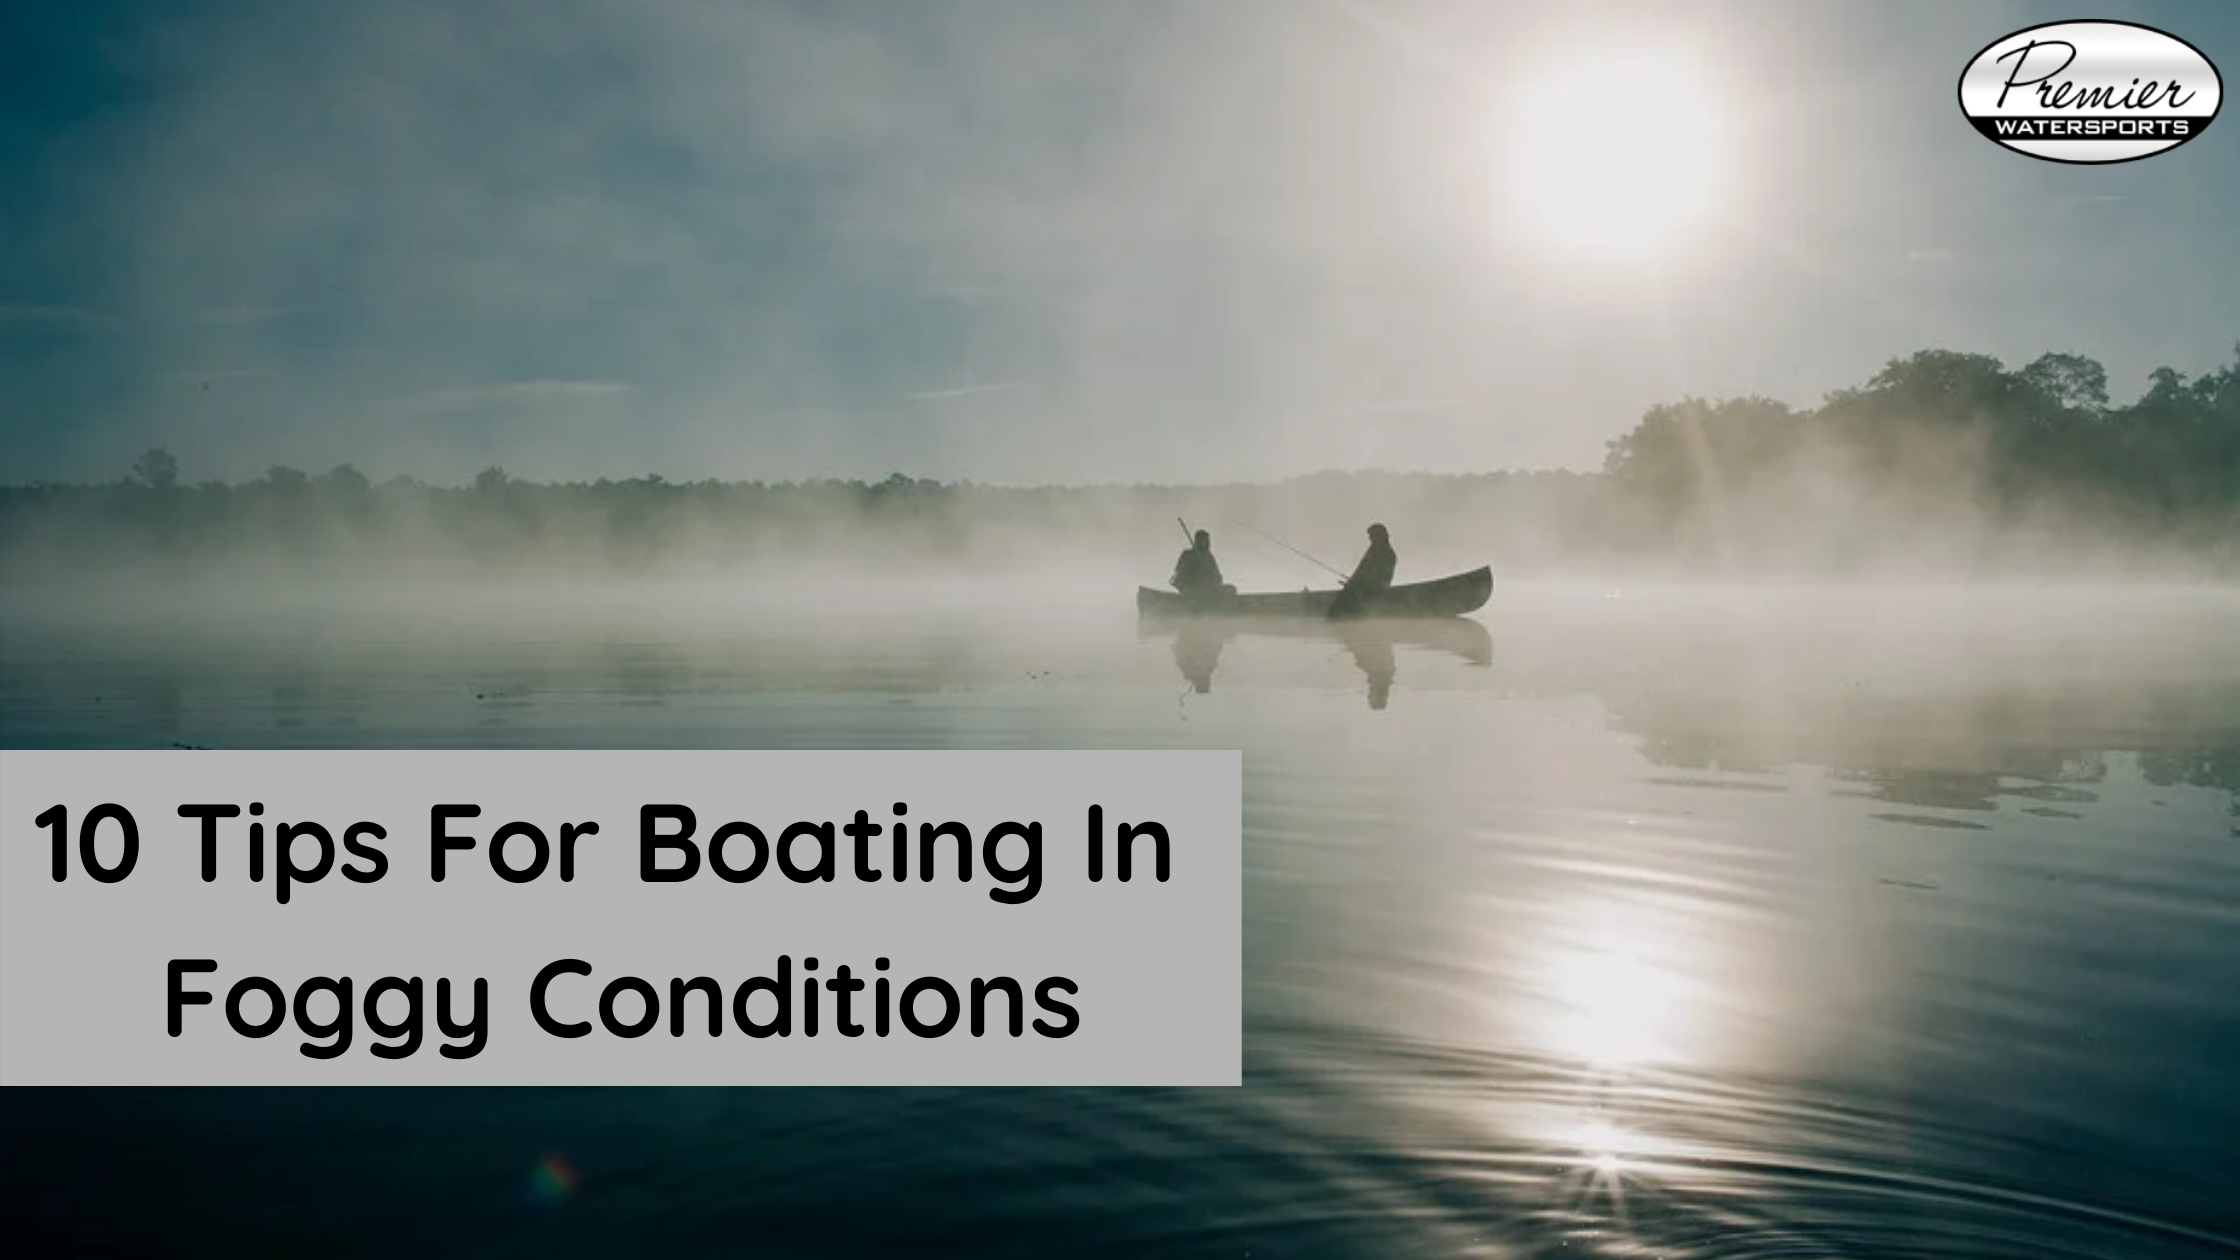 10 Tips For Boating In Foggy Conditions - GeeksScan